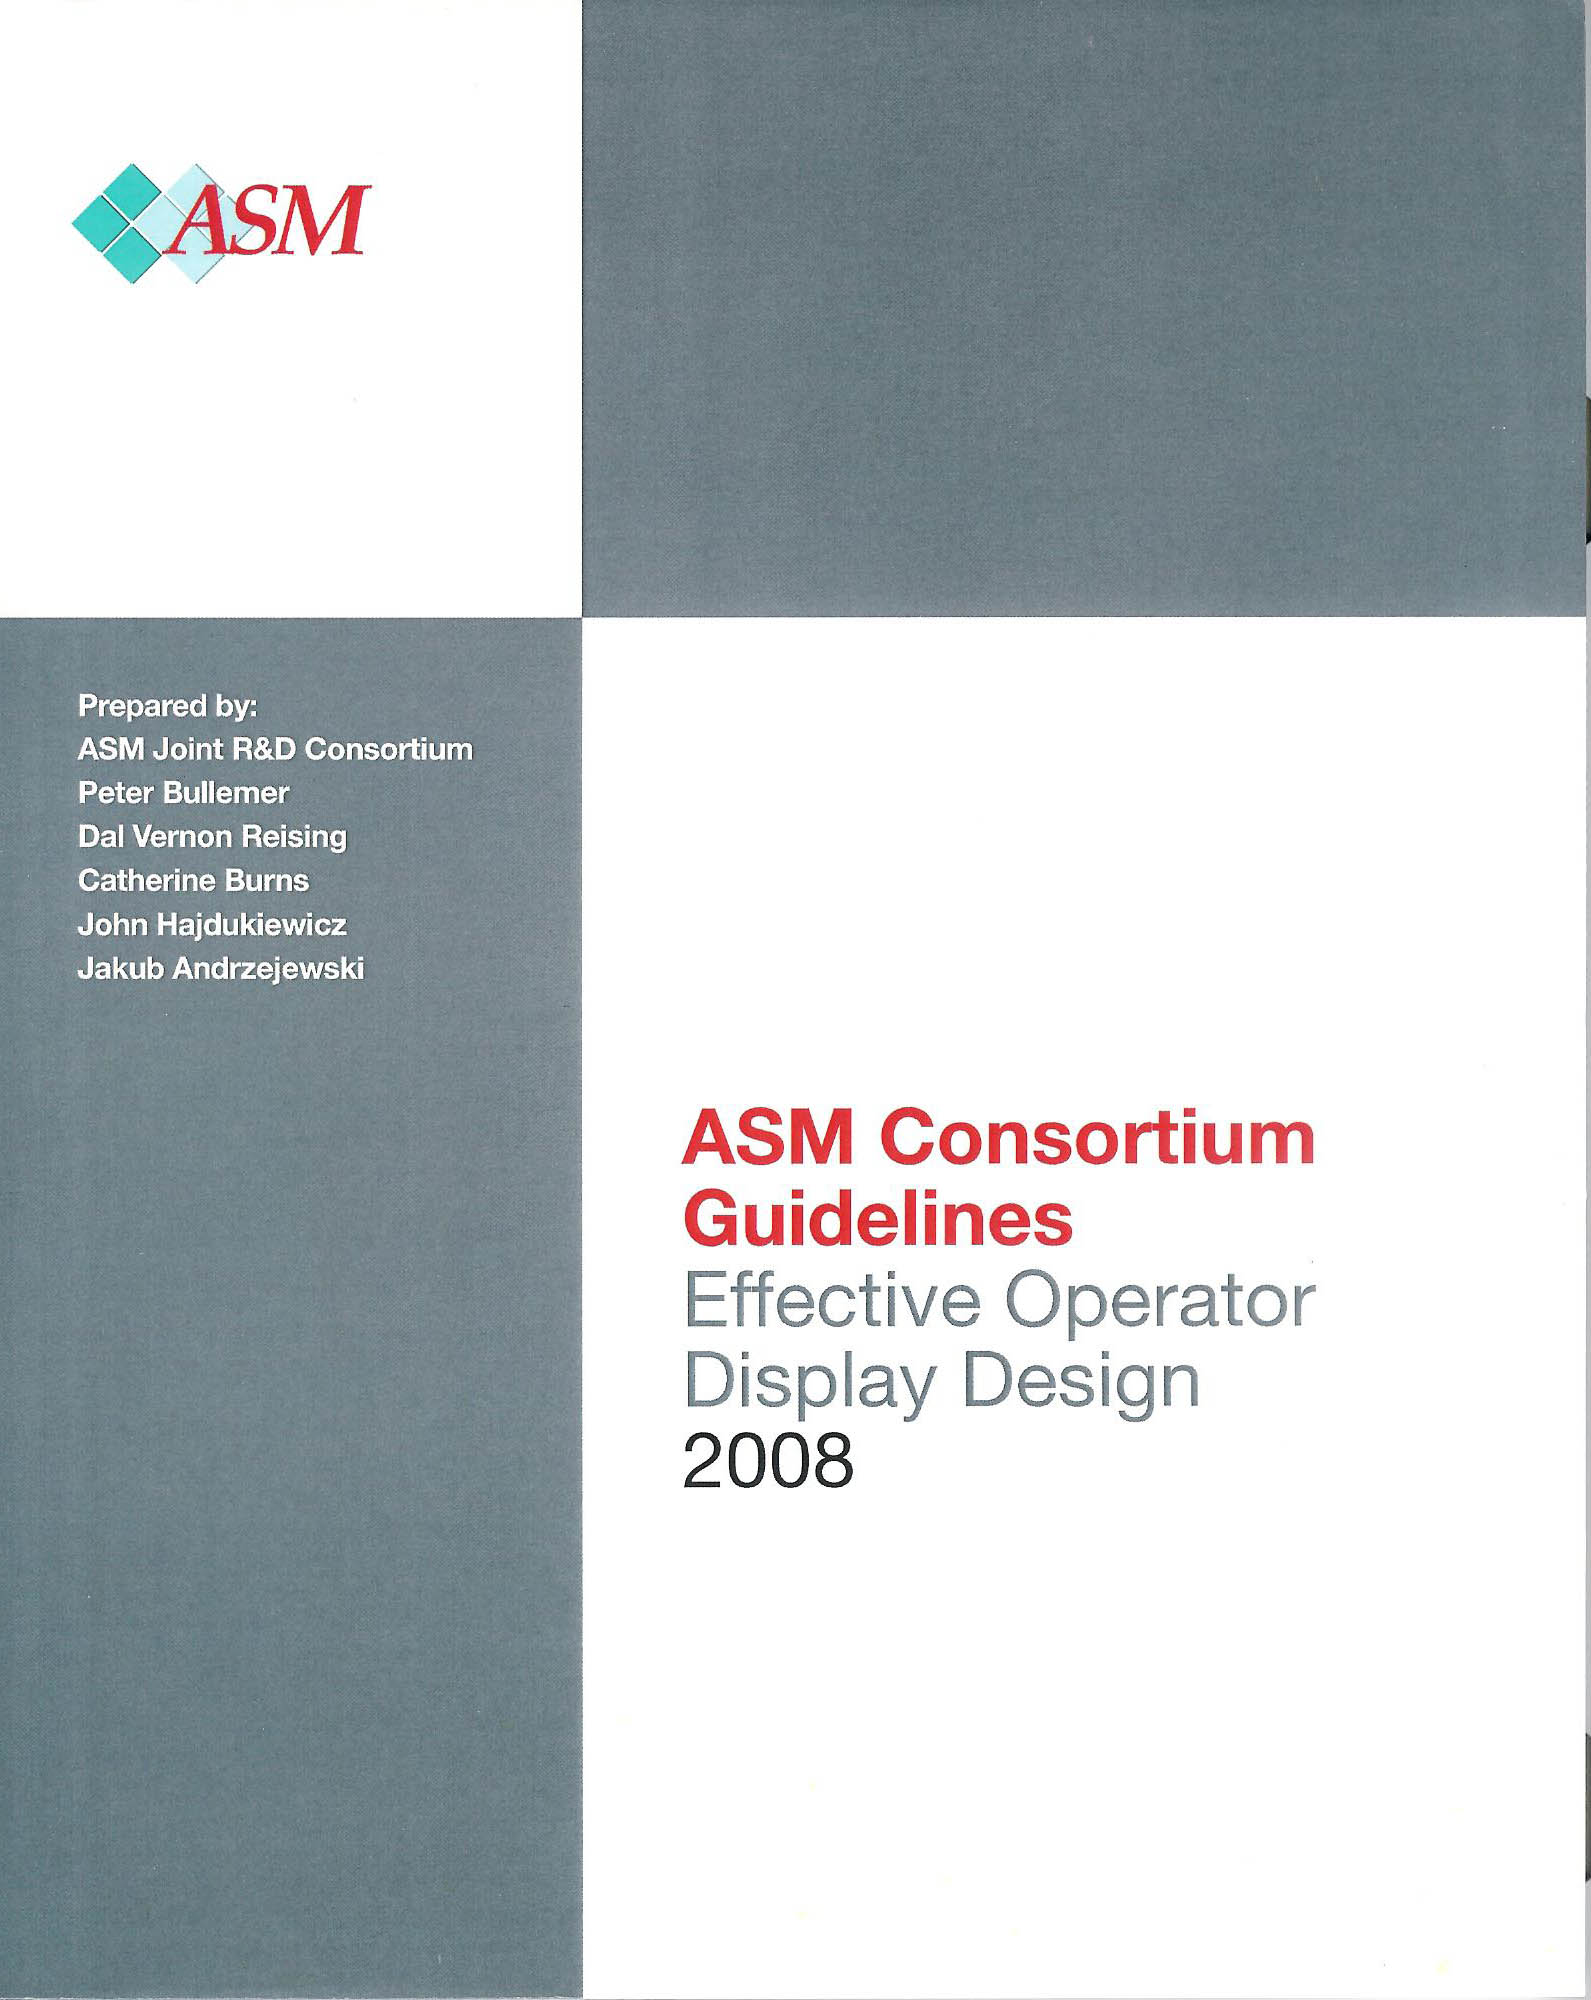 ASM Guidelines for effective operator display design.